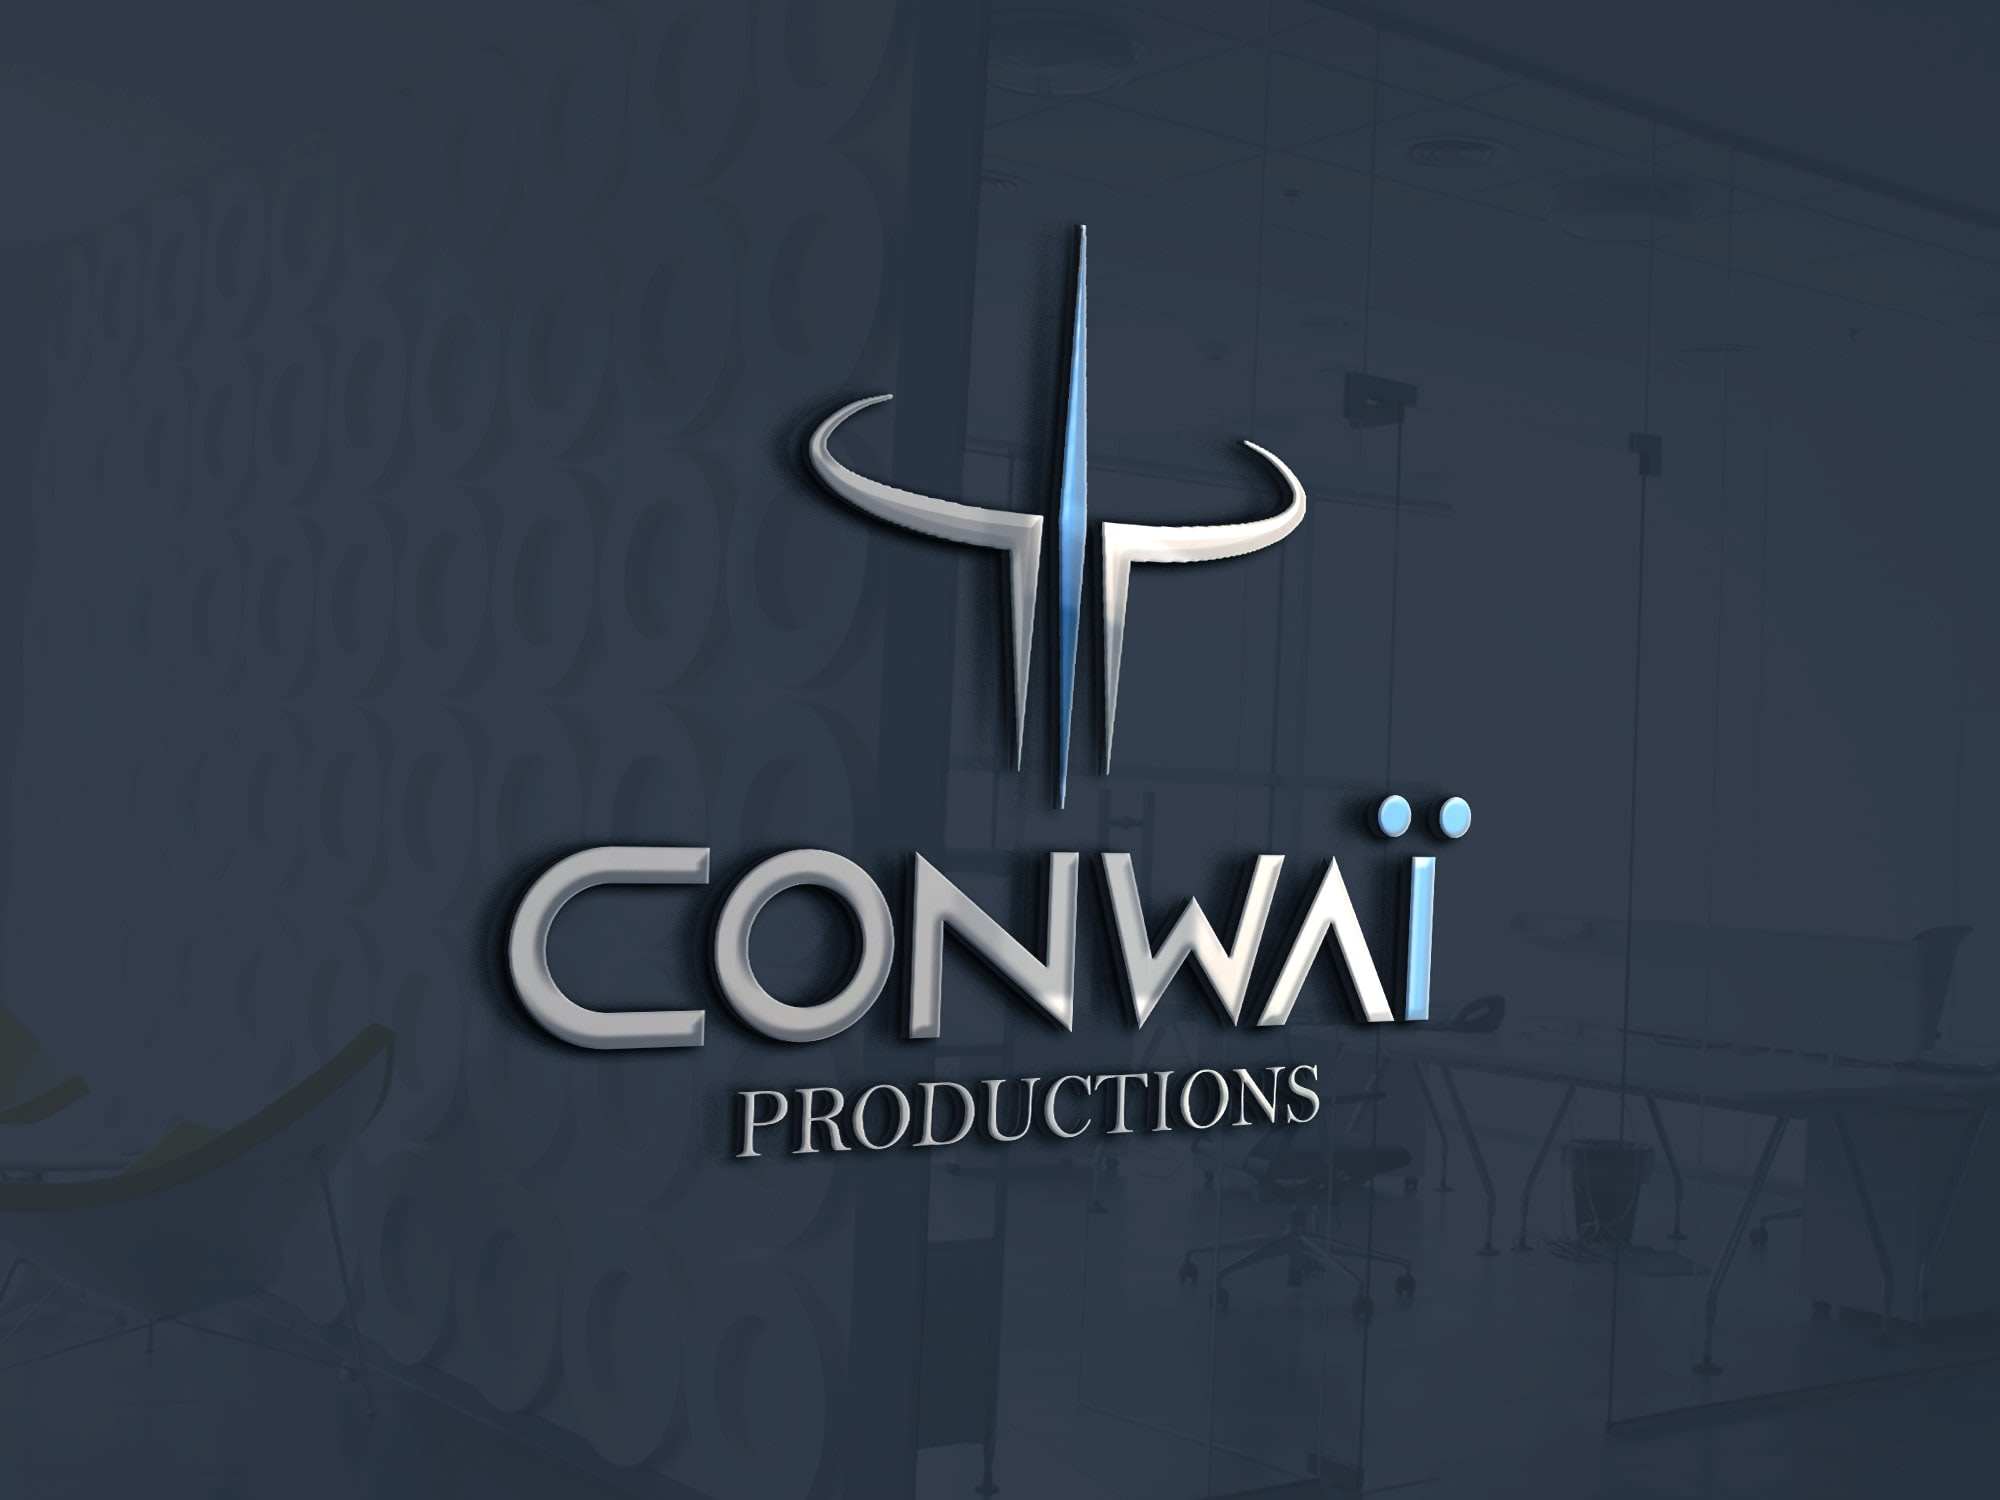 Conwaï Productions